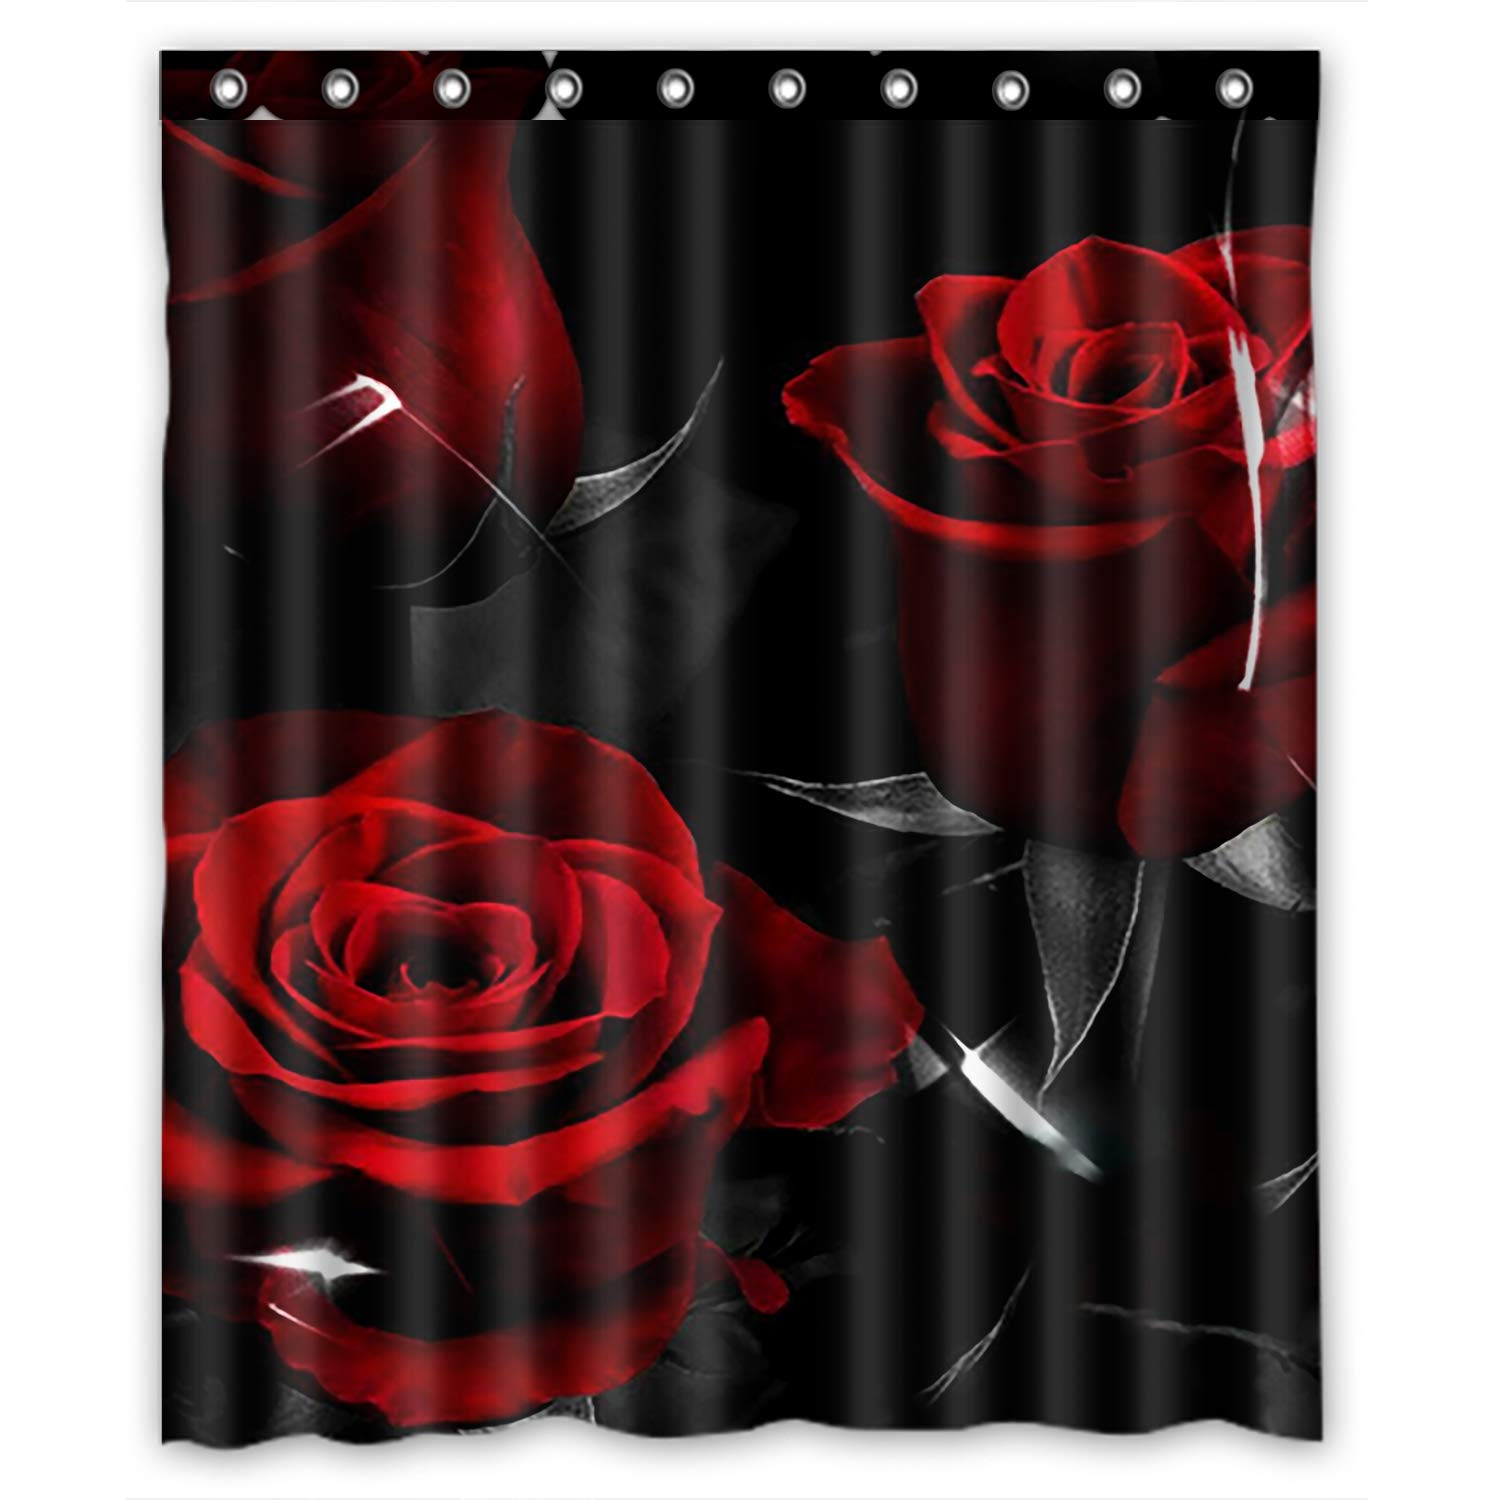 KXMDXA Glam Fire Red Rose And Black Leaves Waterproof Polyester Bath Shower Curtain Size 60x72 Inch